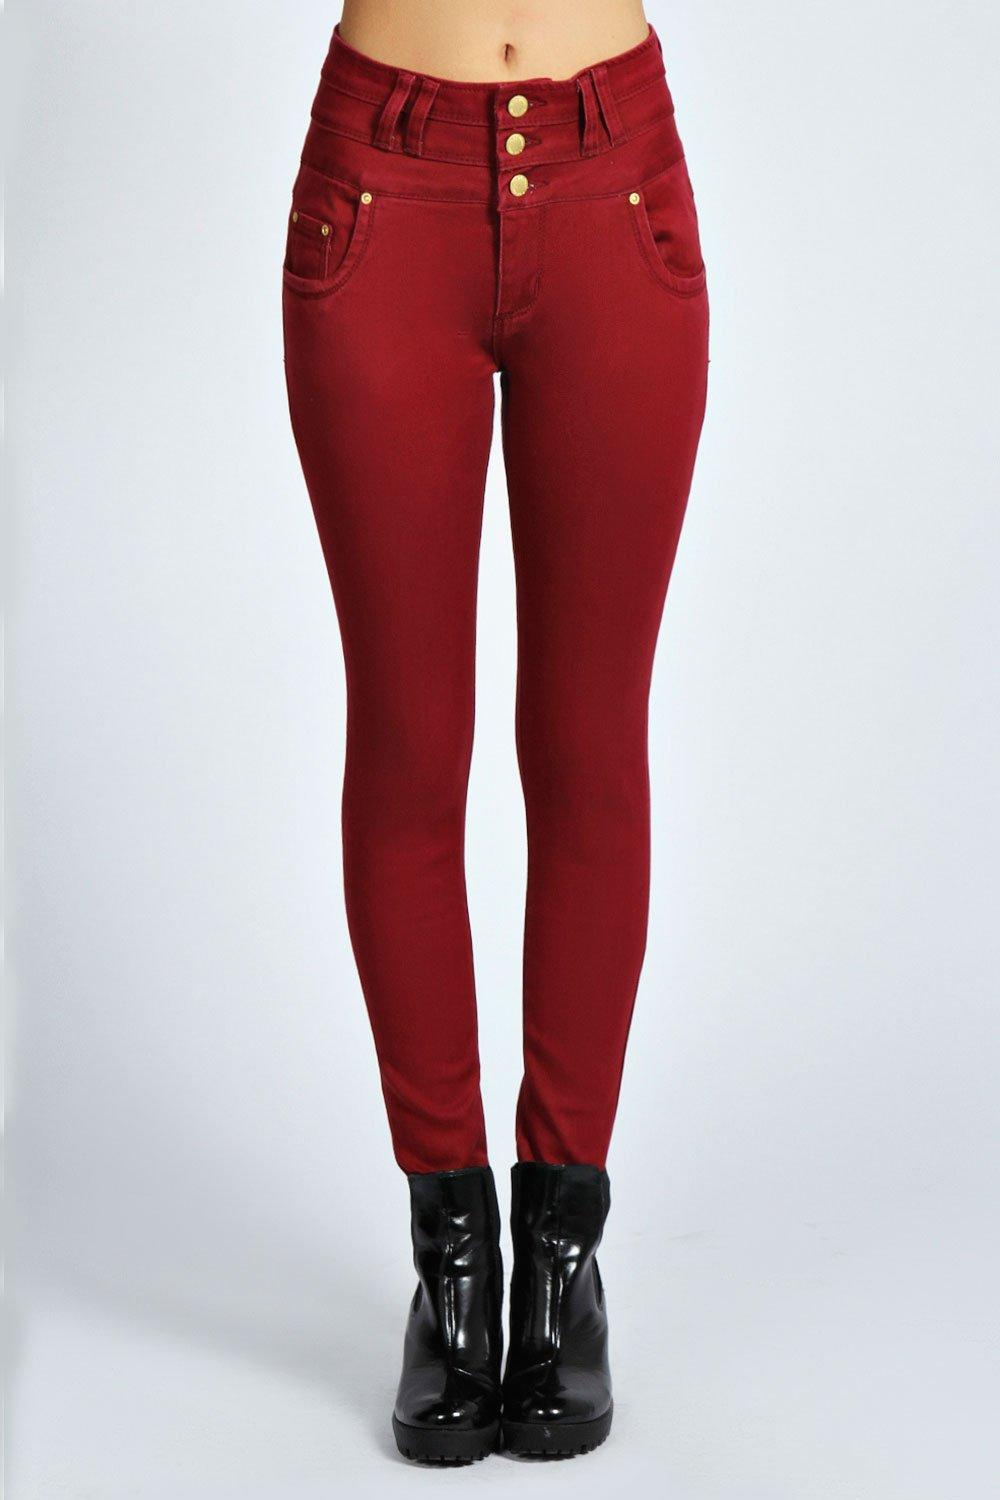 Mollie 3 Button High Waist Skinny Jeans at boohoo.com